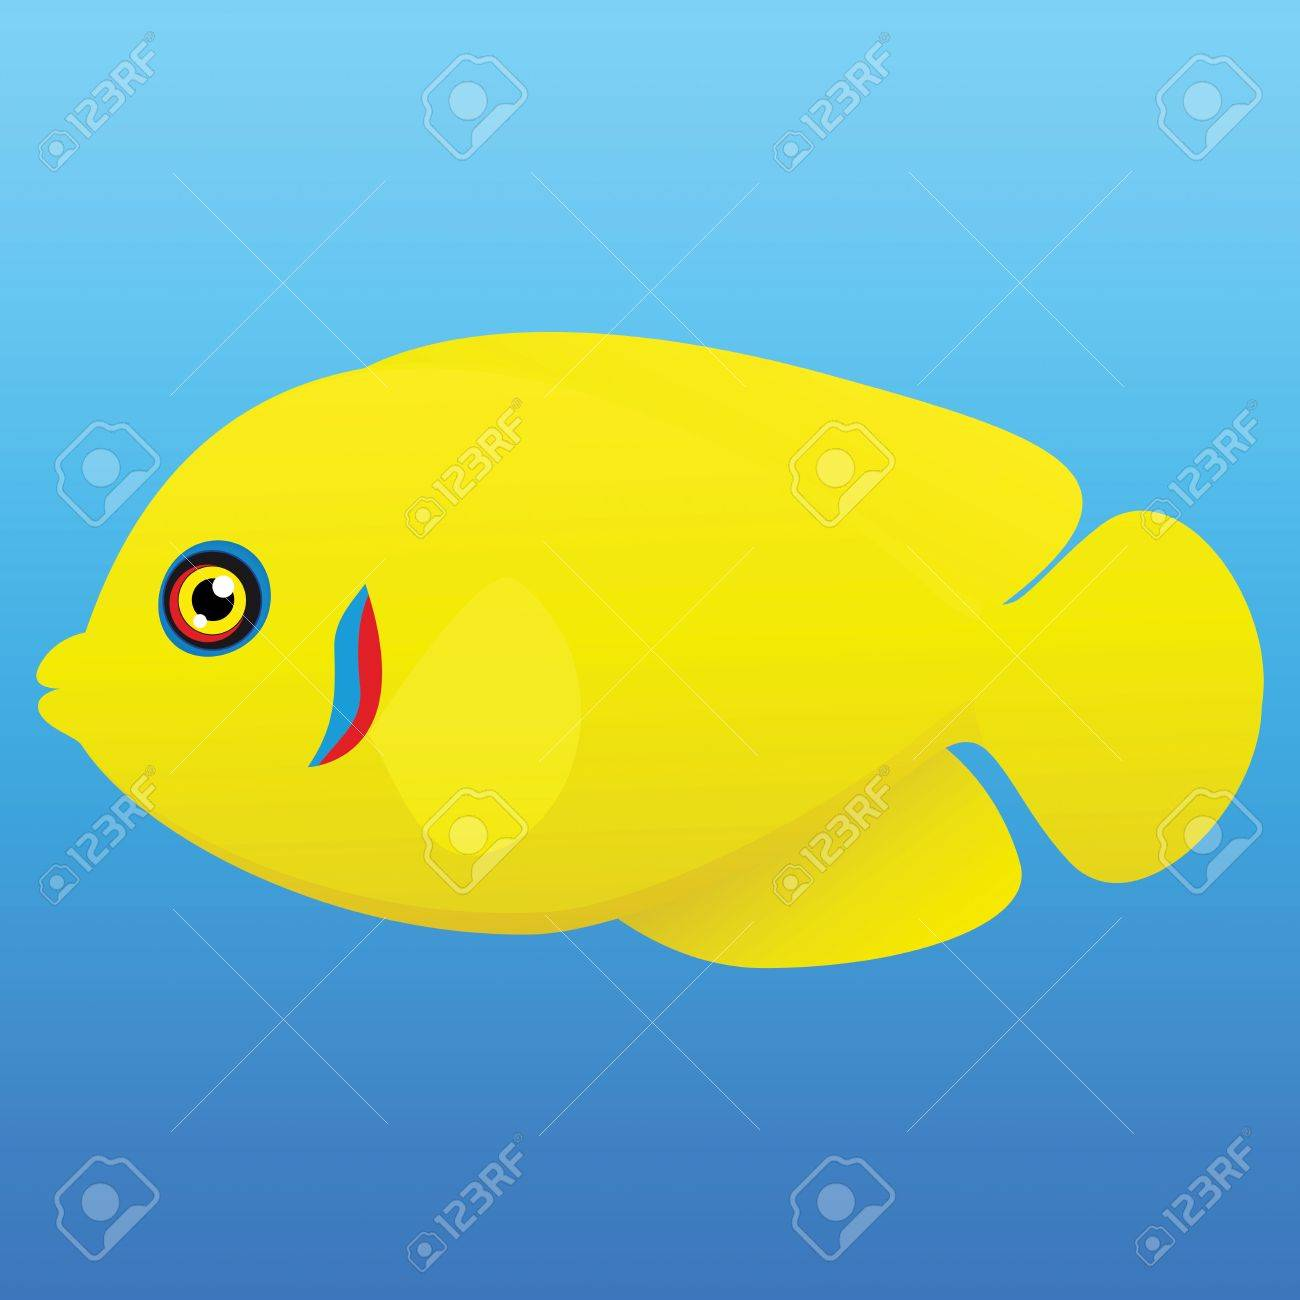 A illustration of a yellow, blue and red lemonpeel angel fish on blue background Stock Vector - 19511117